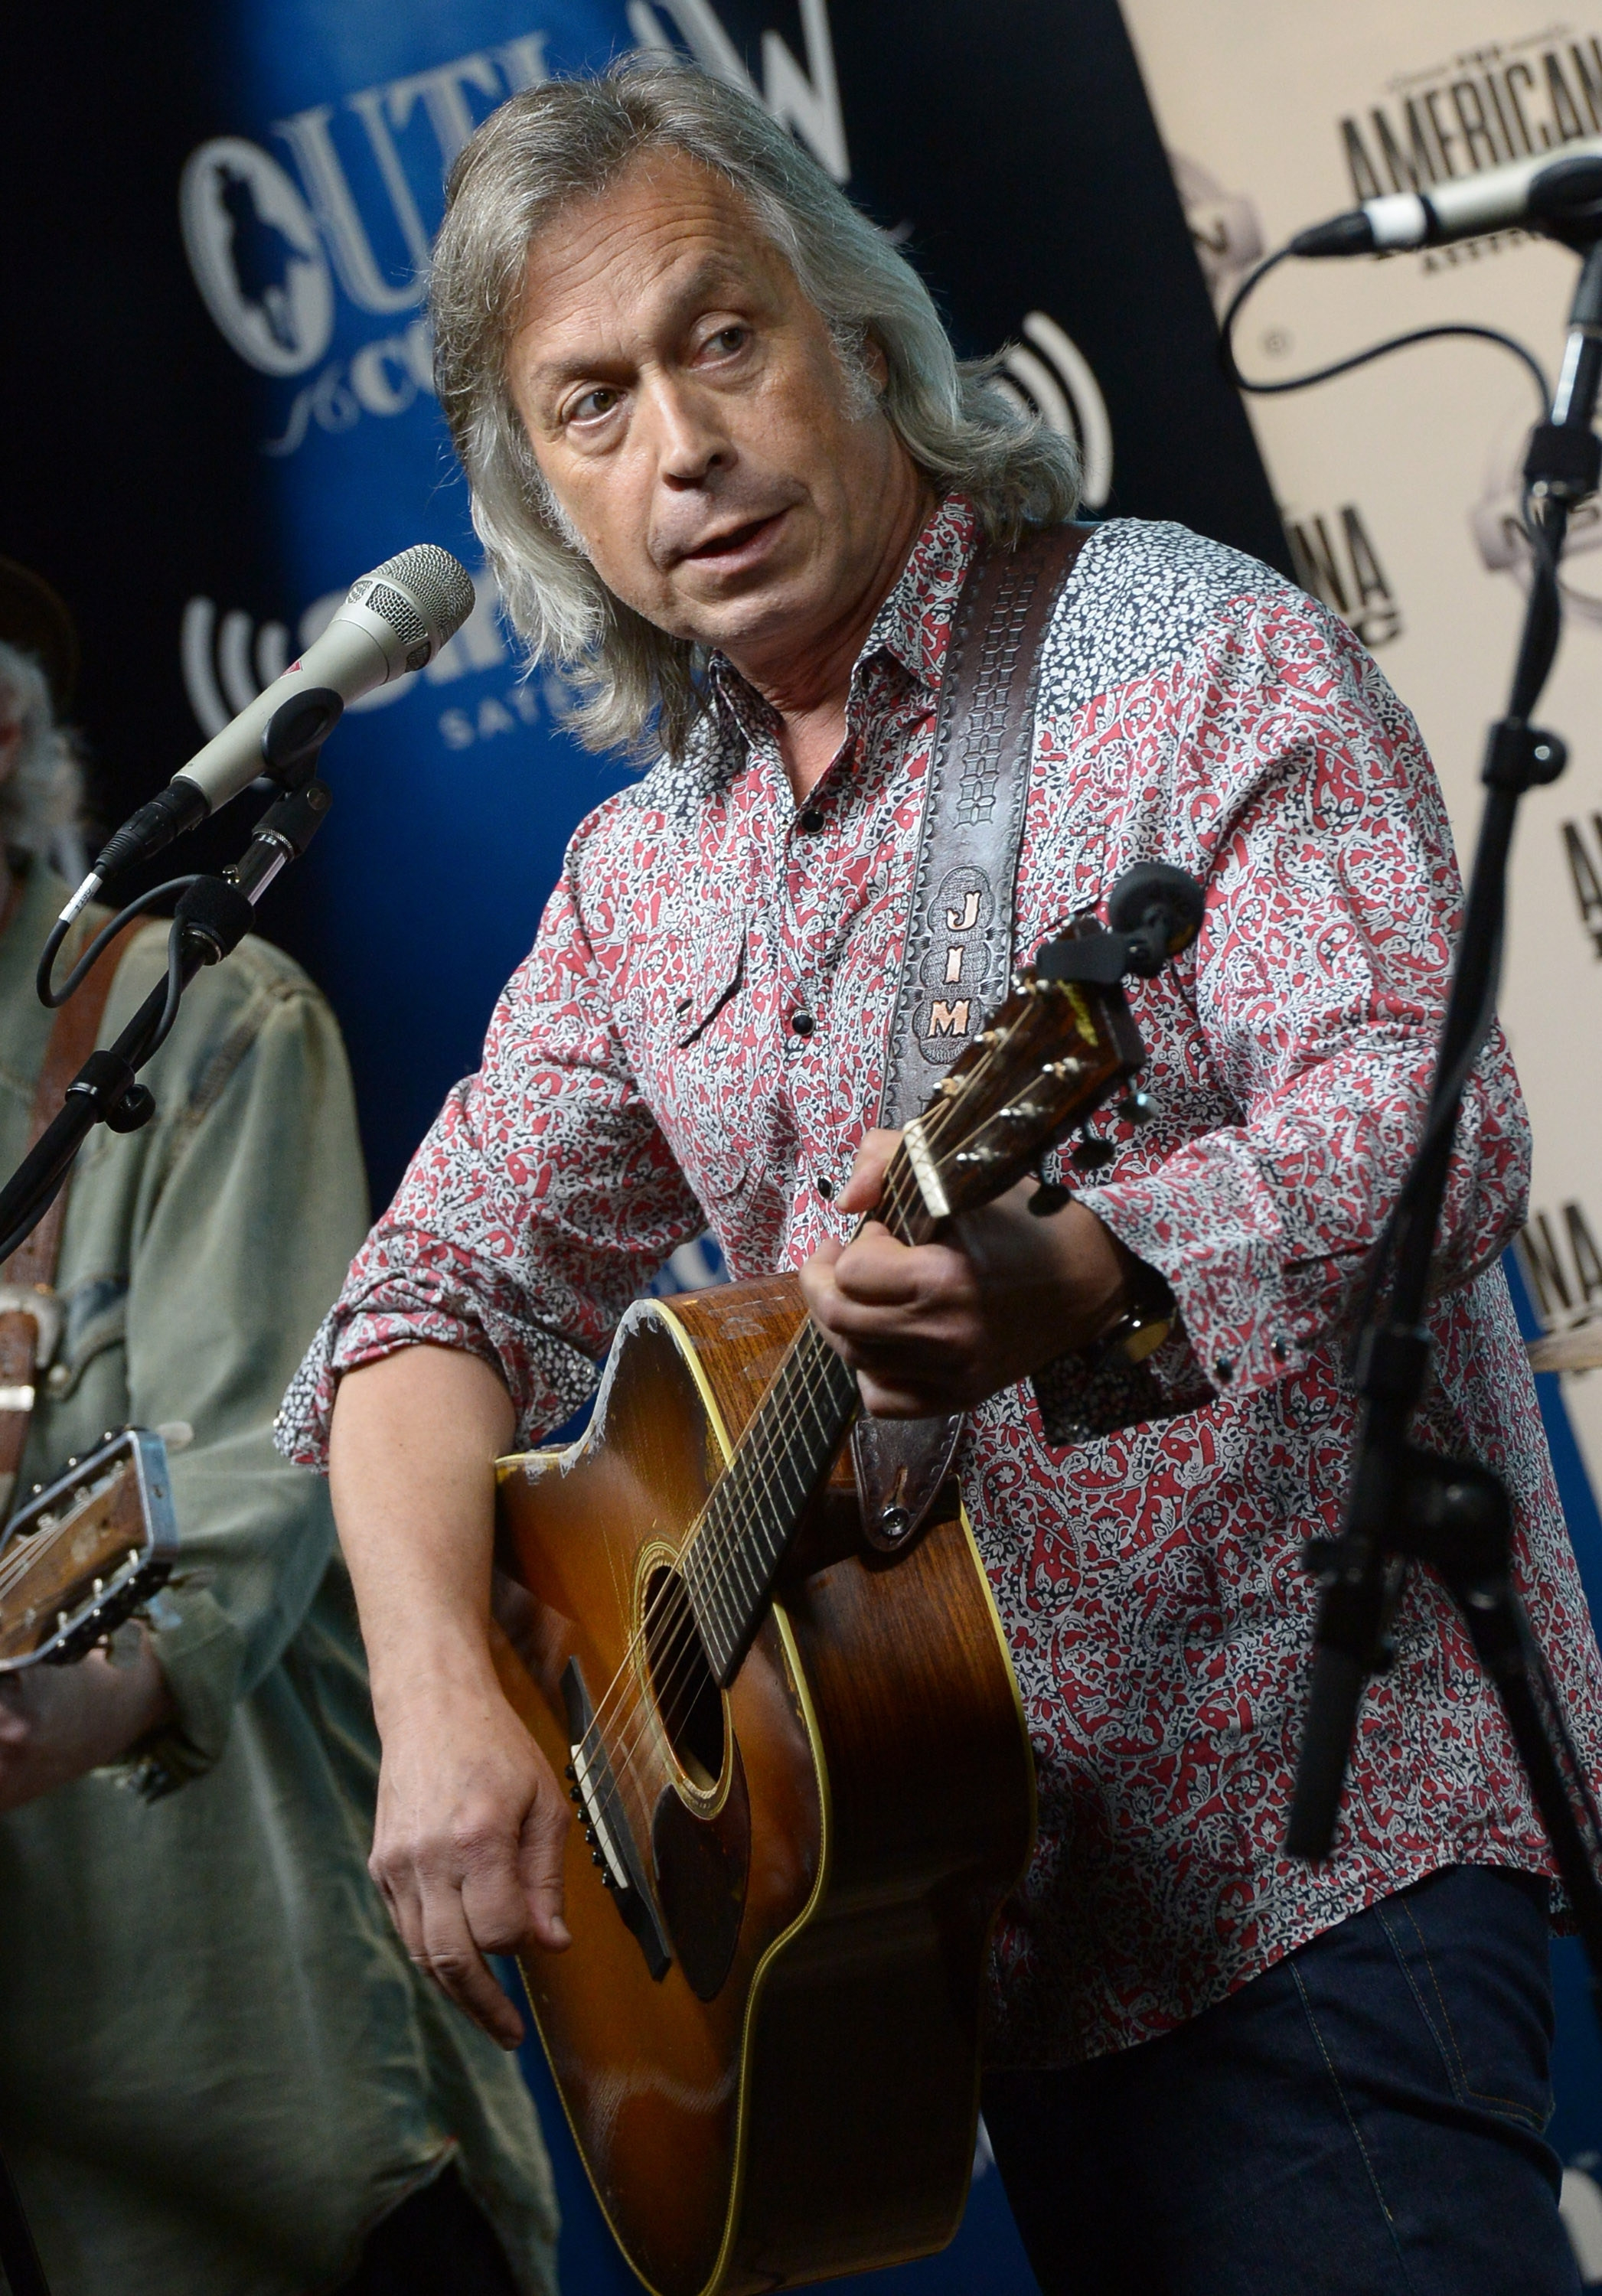 Rocking the house: Recording artist Jim Lauderdale performs at the Americana Music Association 2014 Award Nominees Announcement at SIRIUS XM Studio in Nashville.